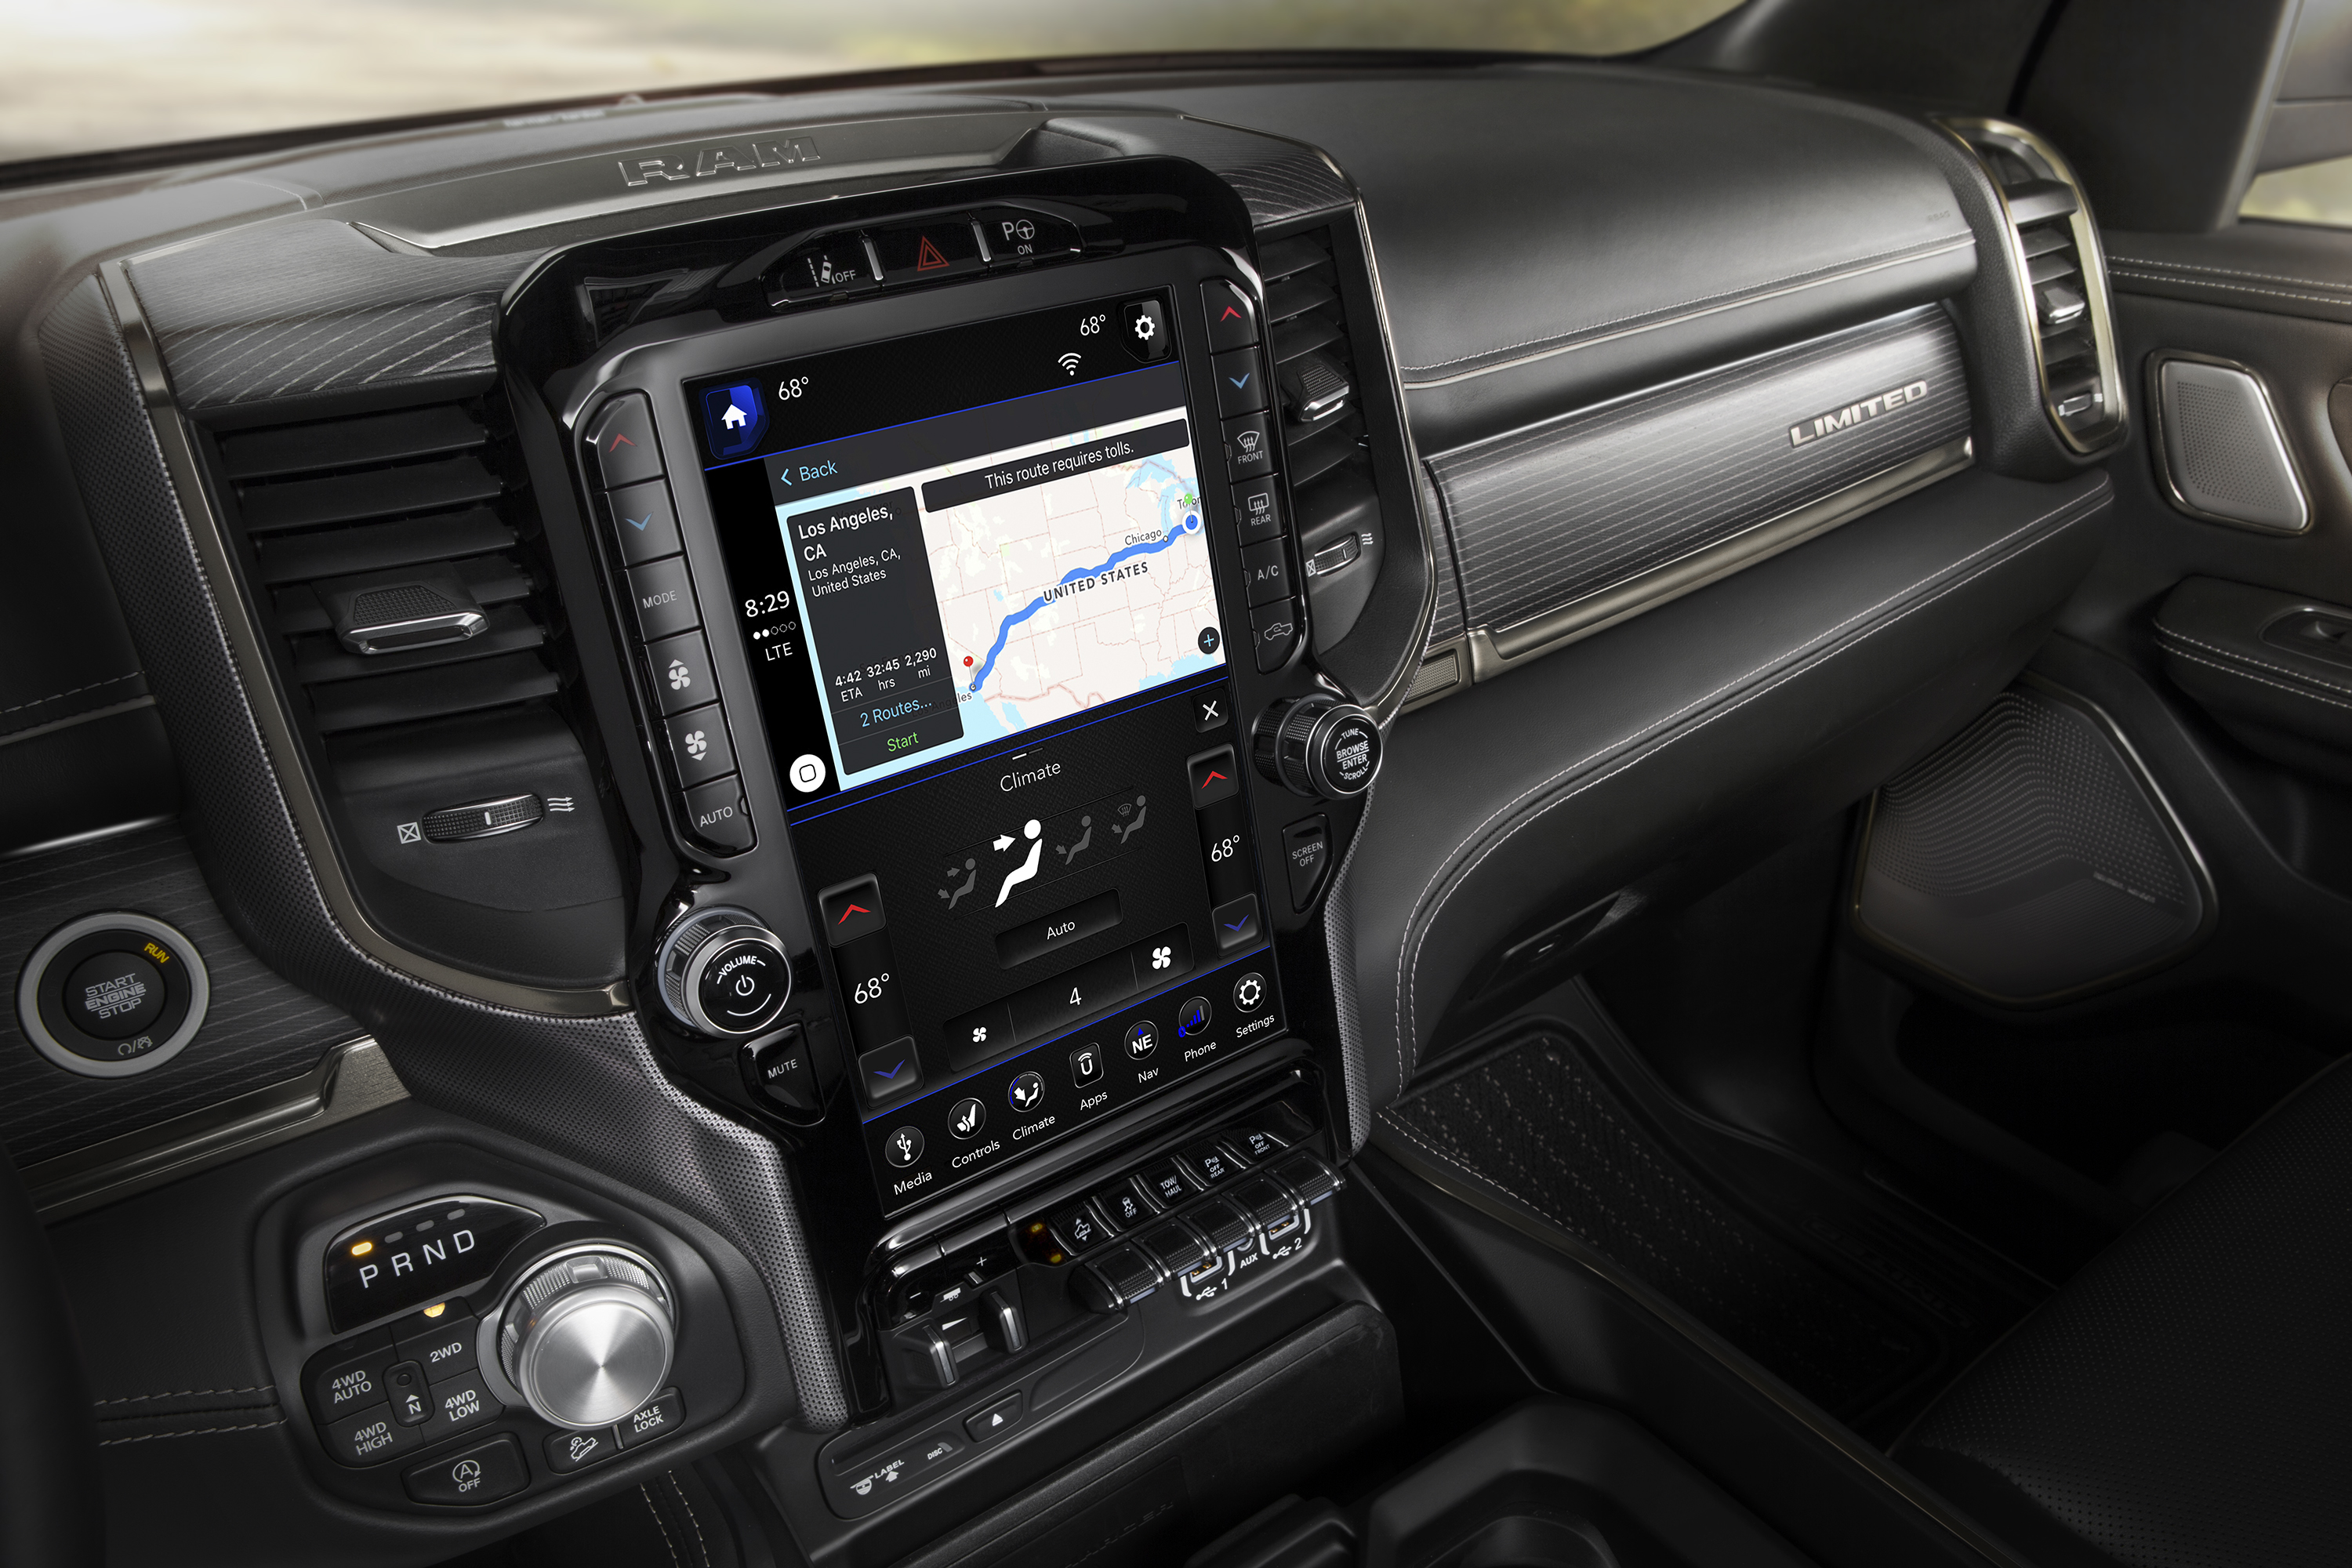 2019 Ram 12 inch UConnect system in depth - 5th Gen Rams